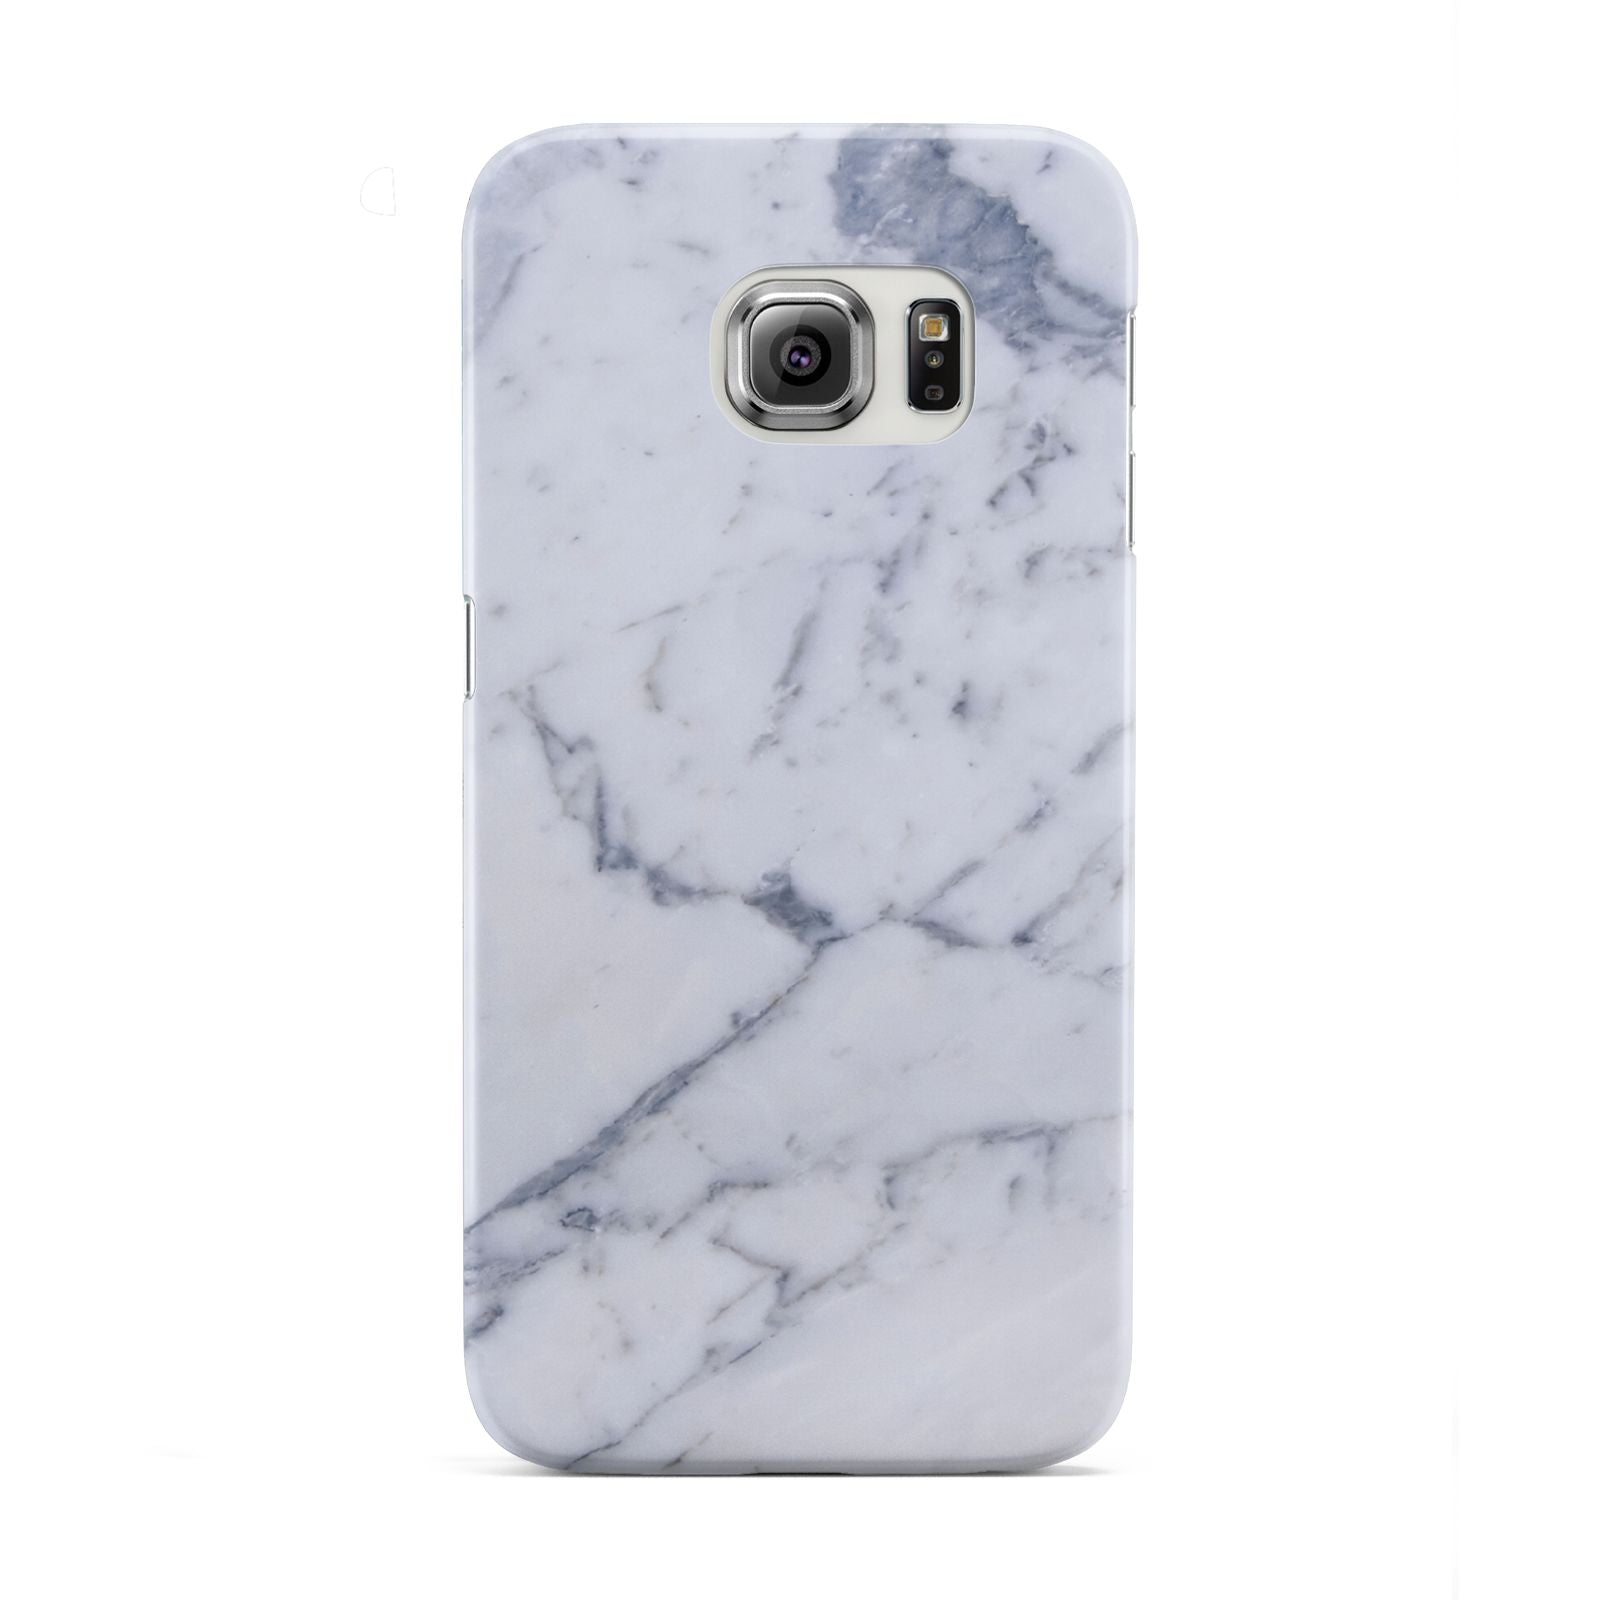 Faux Marble Grey White Samsung Galaxy S6 Edge Case